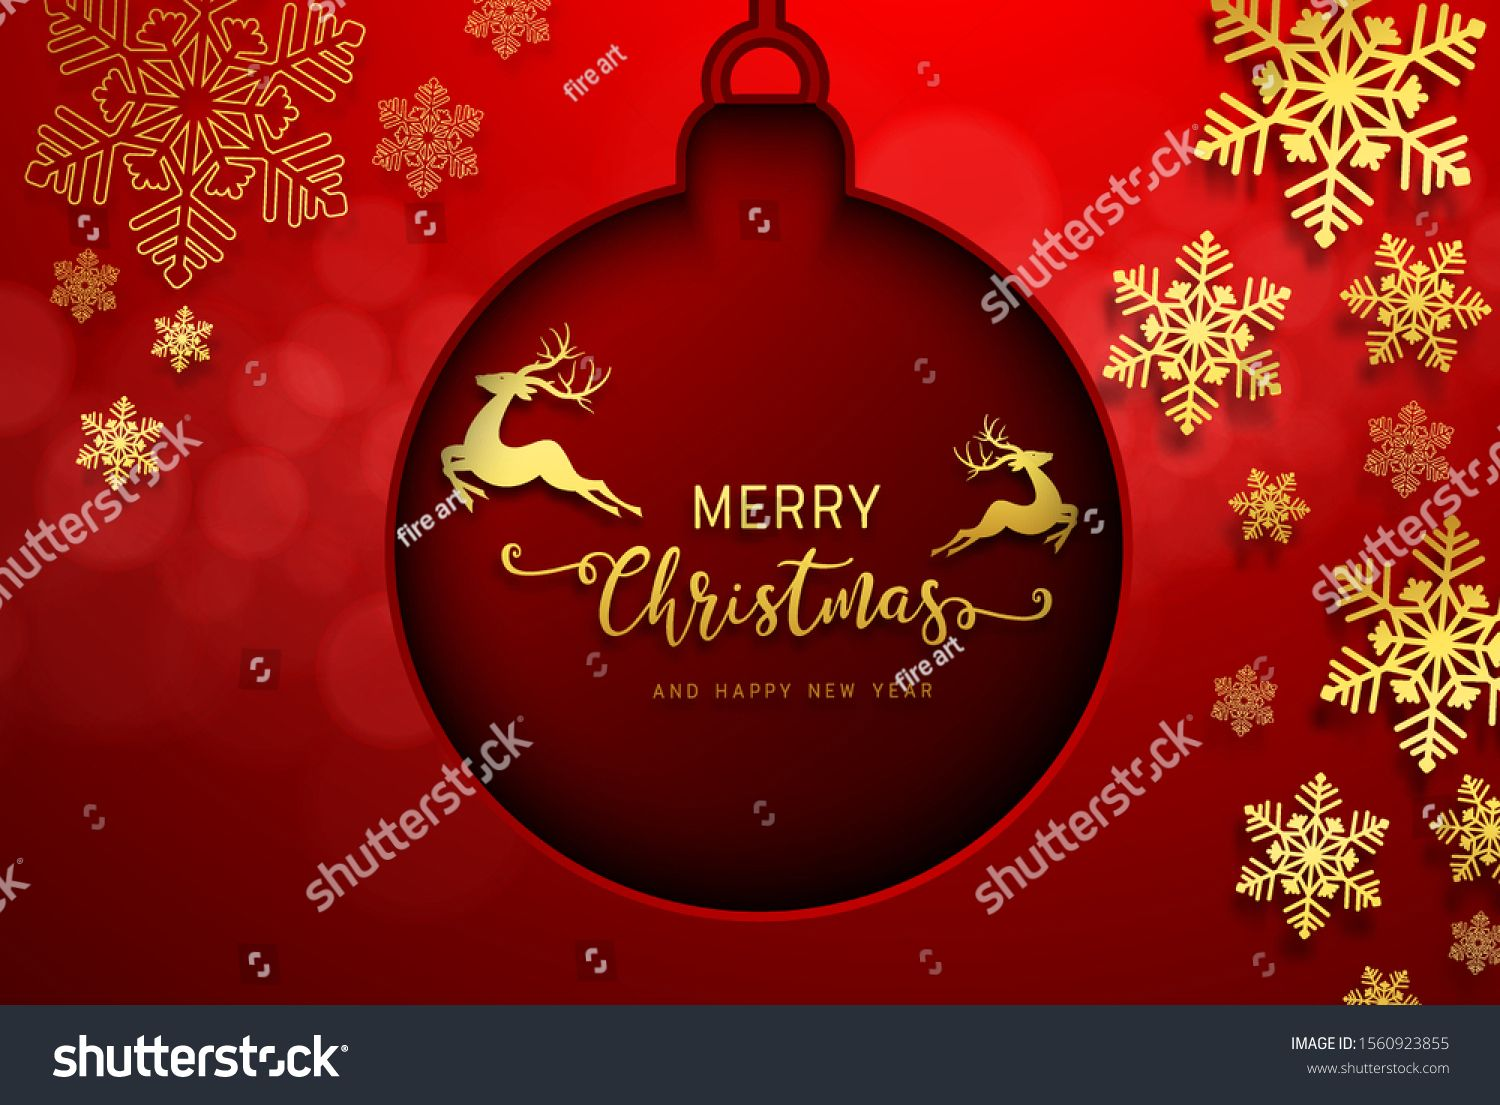 Holiday S Background With Season Wishes And Border Of Realistic Looking Christmas Tree Branches Decorated A Holiday Background Holiday Christmas Tree Branches